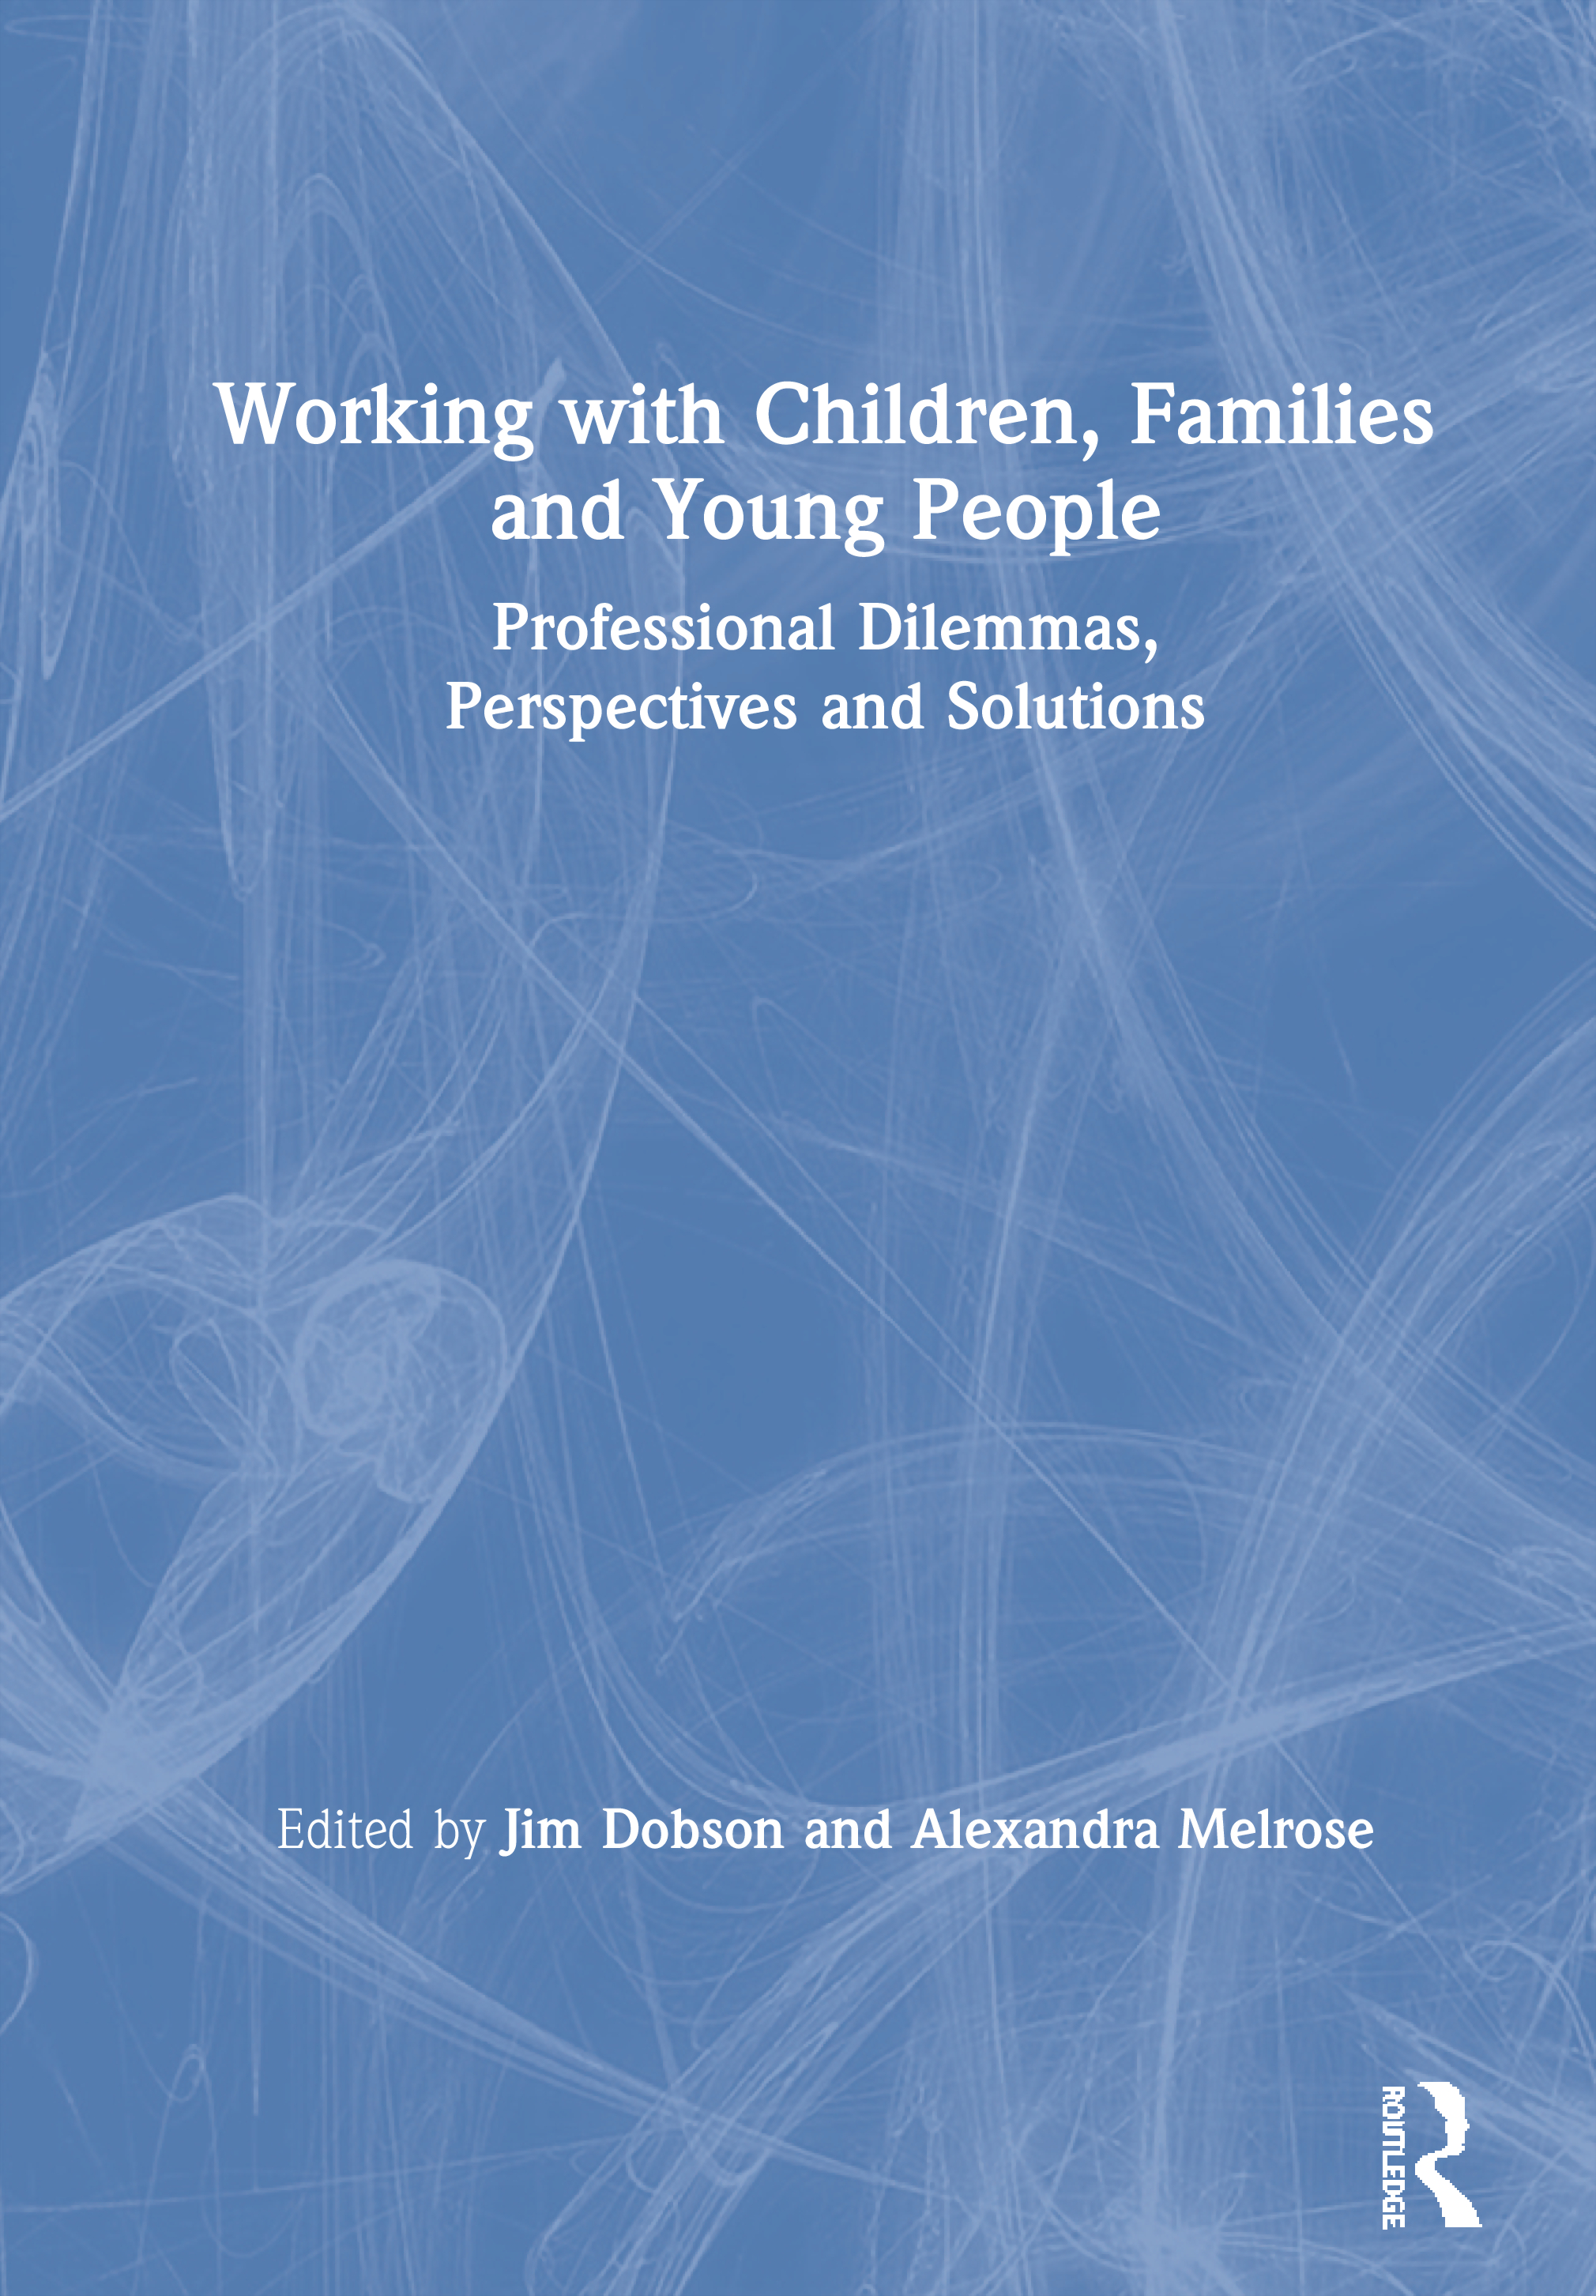 Working with Children, Families and Young People: Professional Dilemmas, Perspectives and Solutions book cover